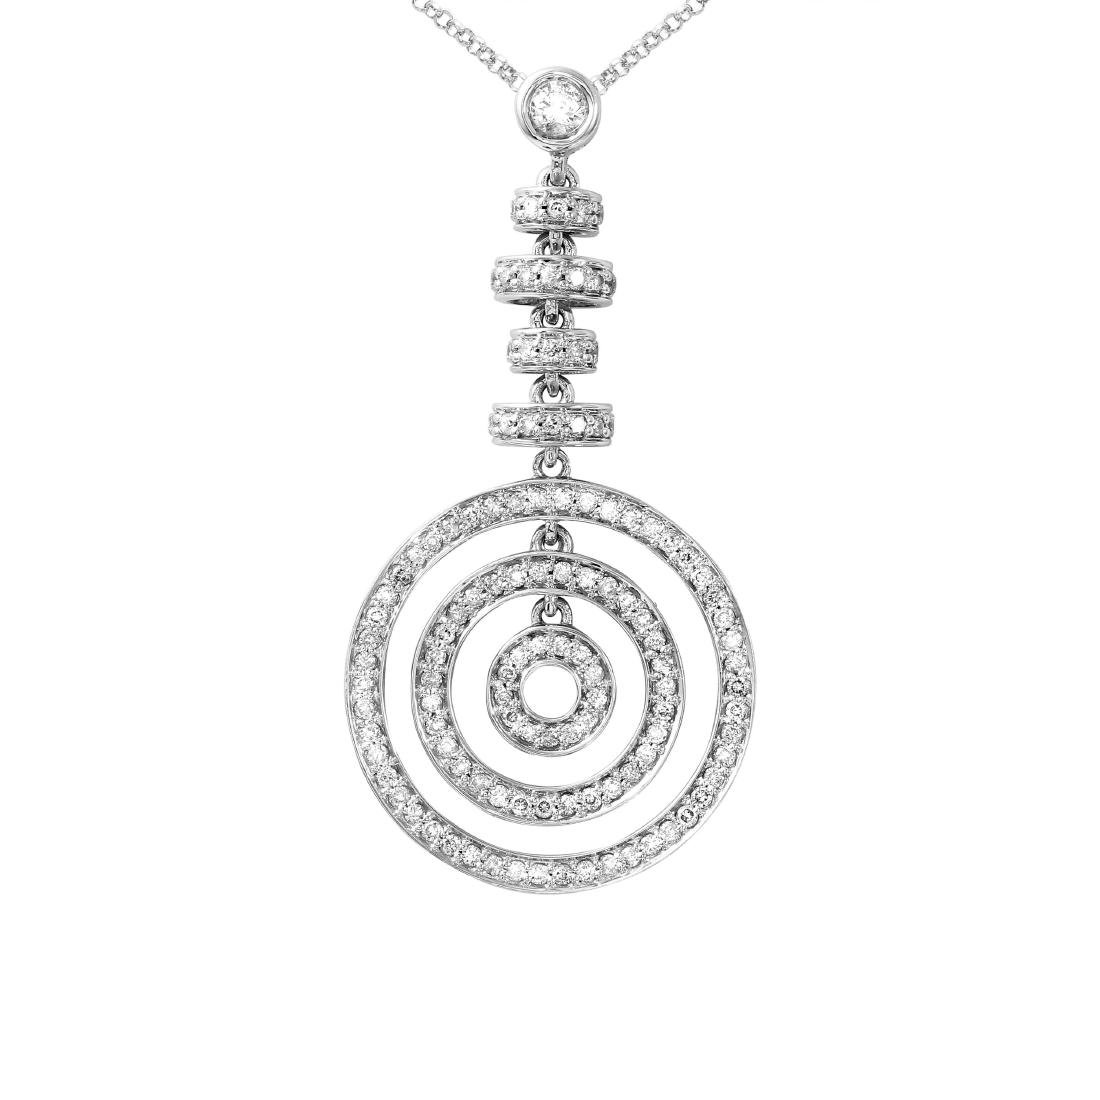 14KT White Gold Ladies Slider with Chain - 2